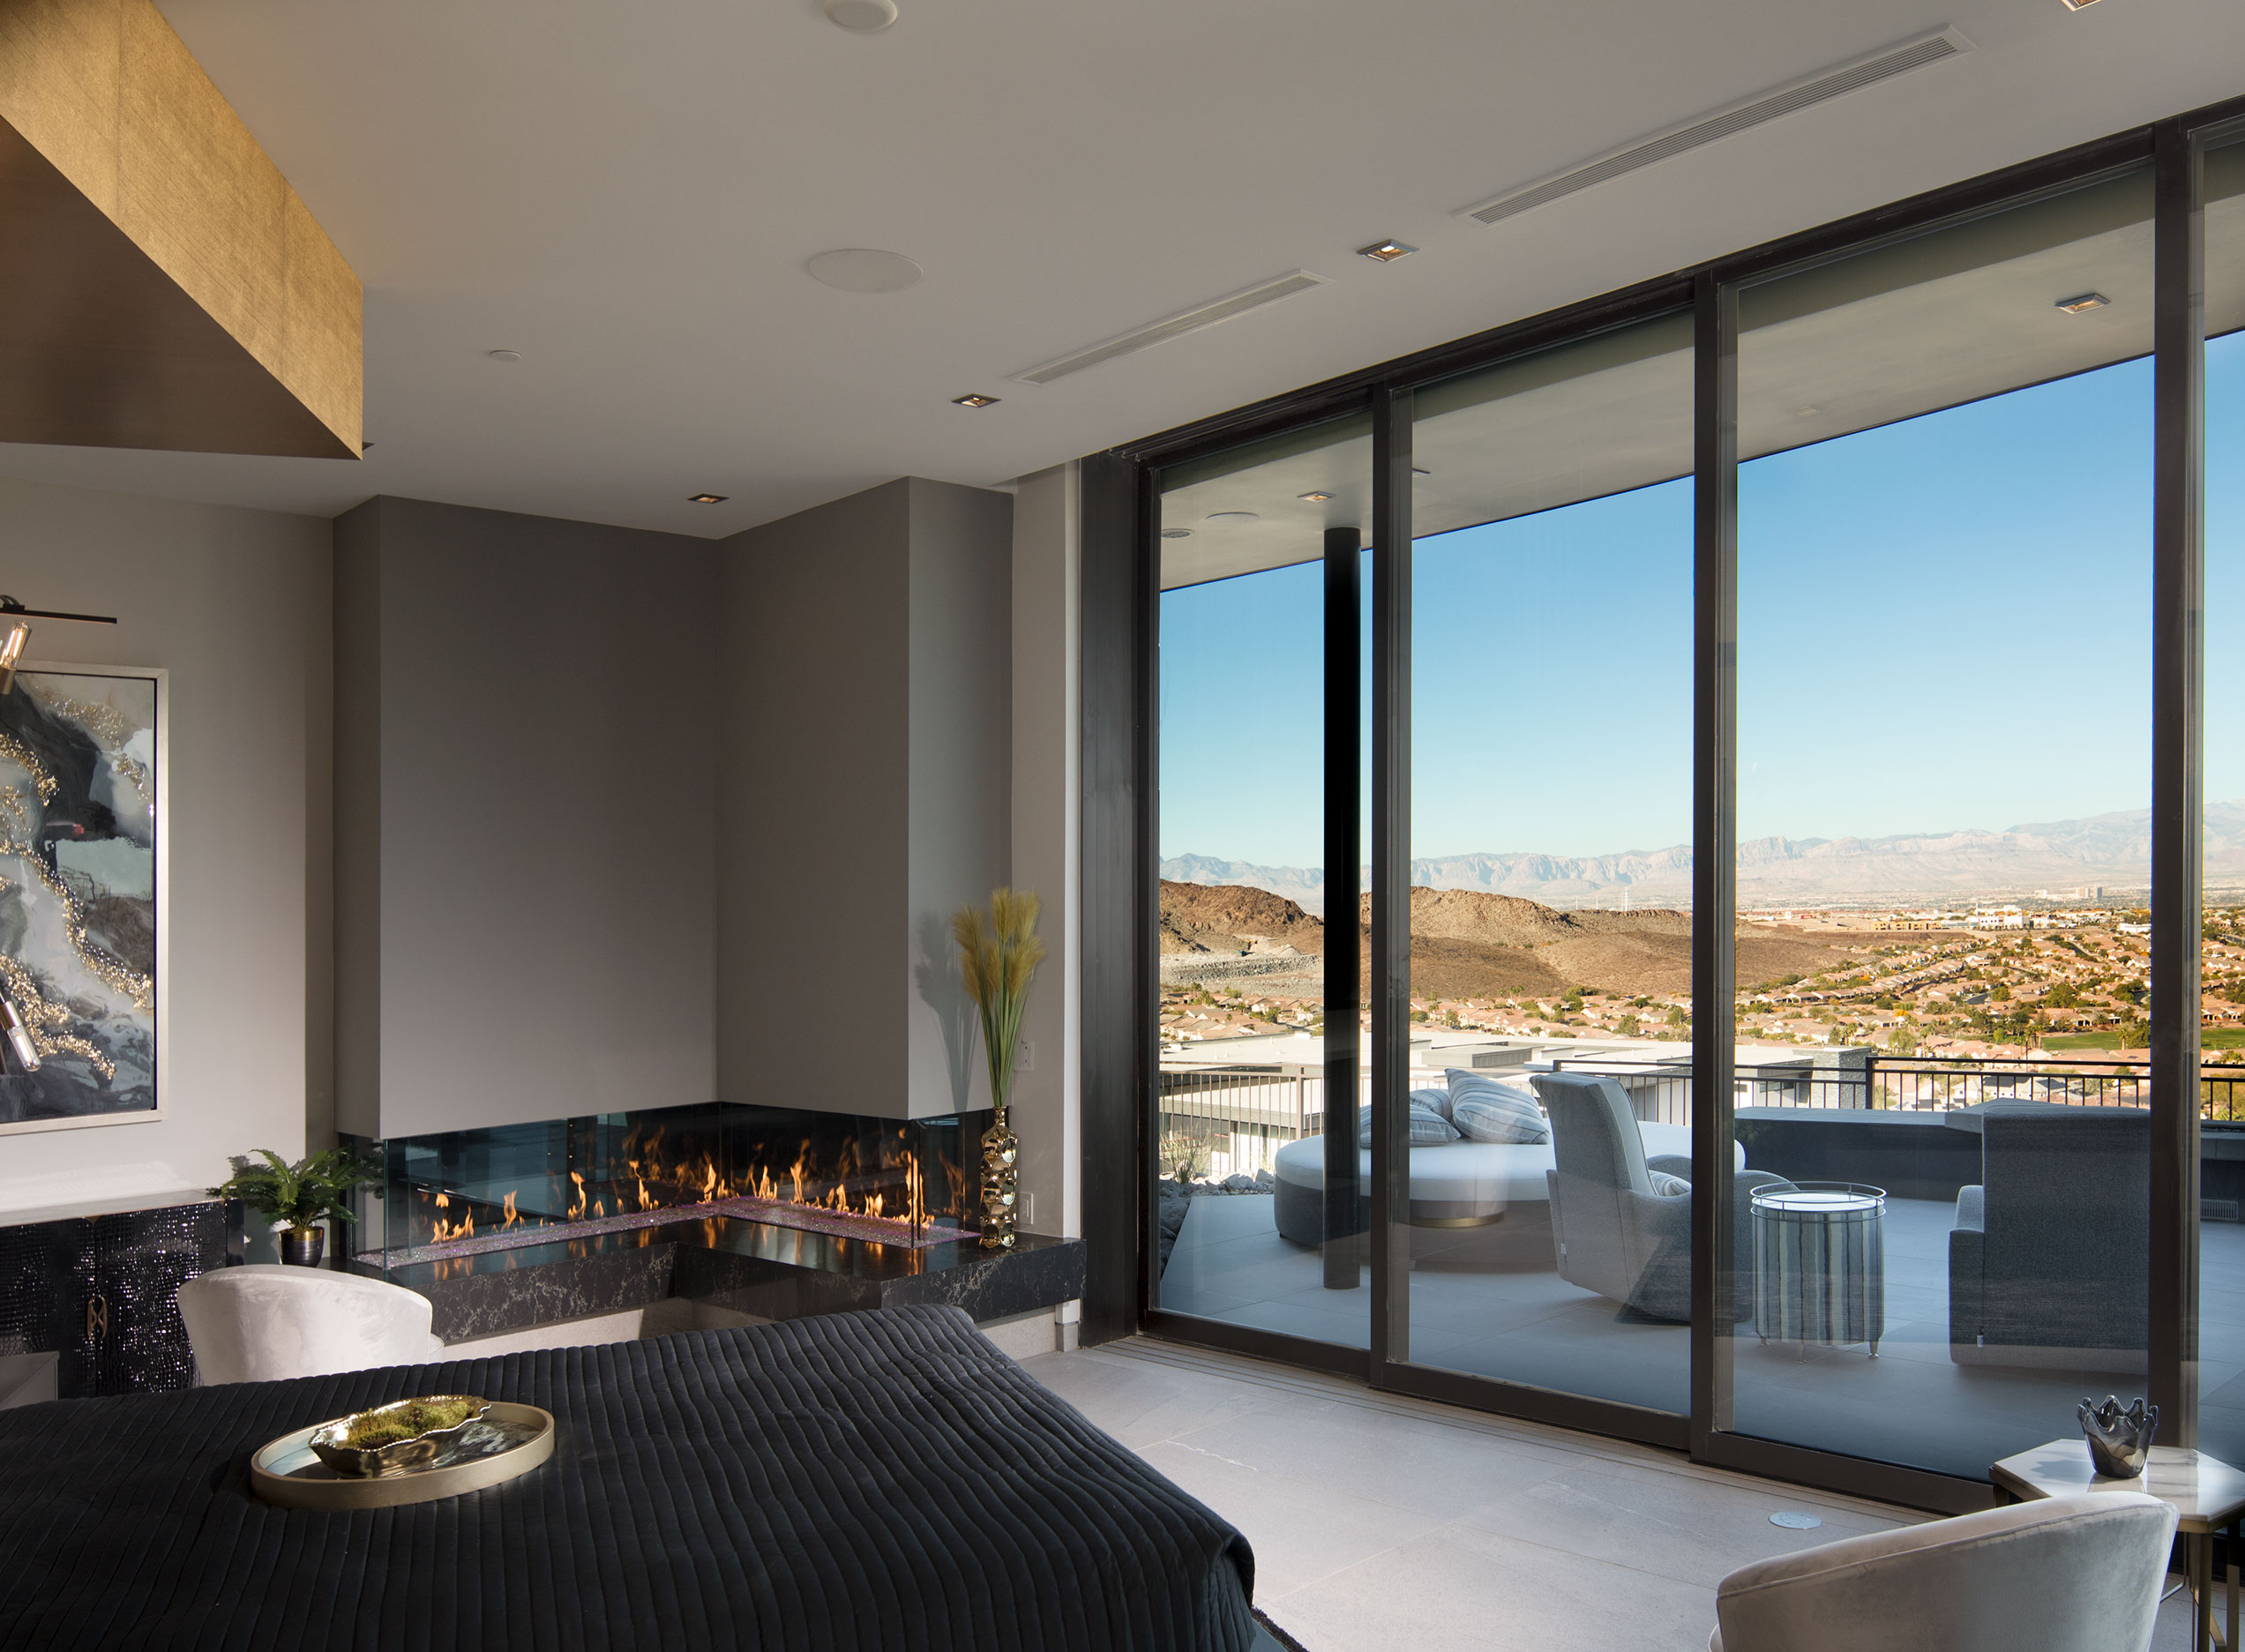 The master suite features large sliding glass doors that open onto a private patio with views of the Las Vegas Valley.